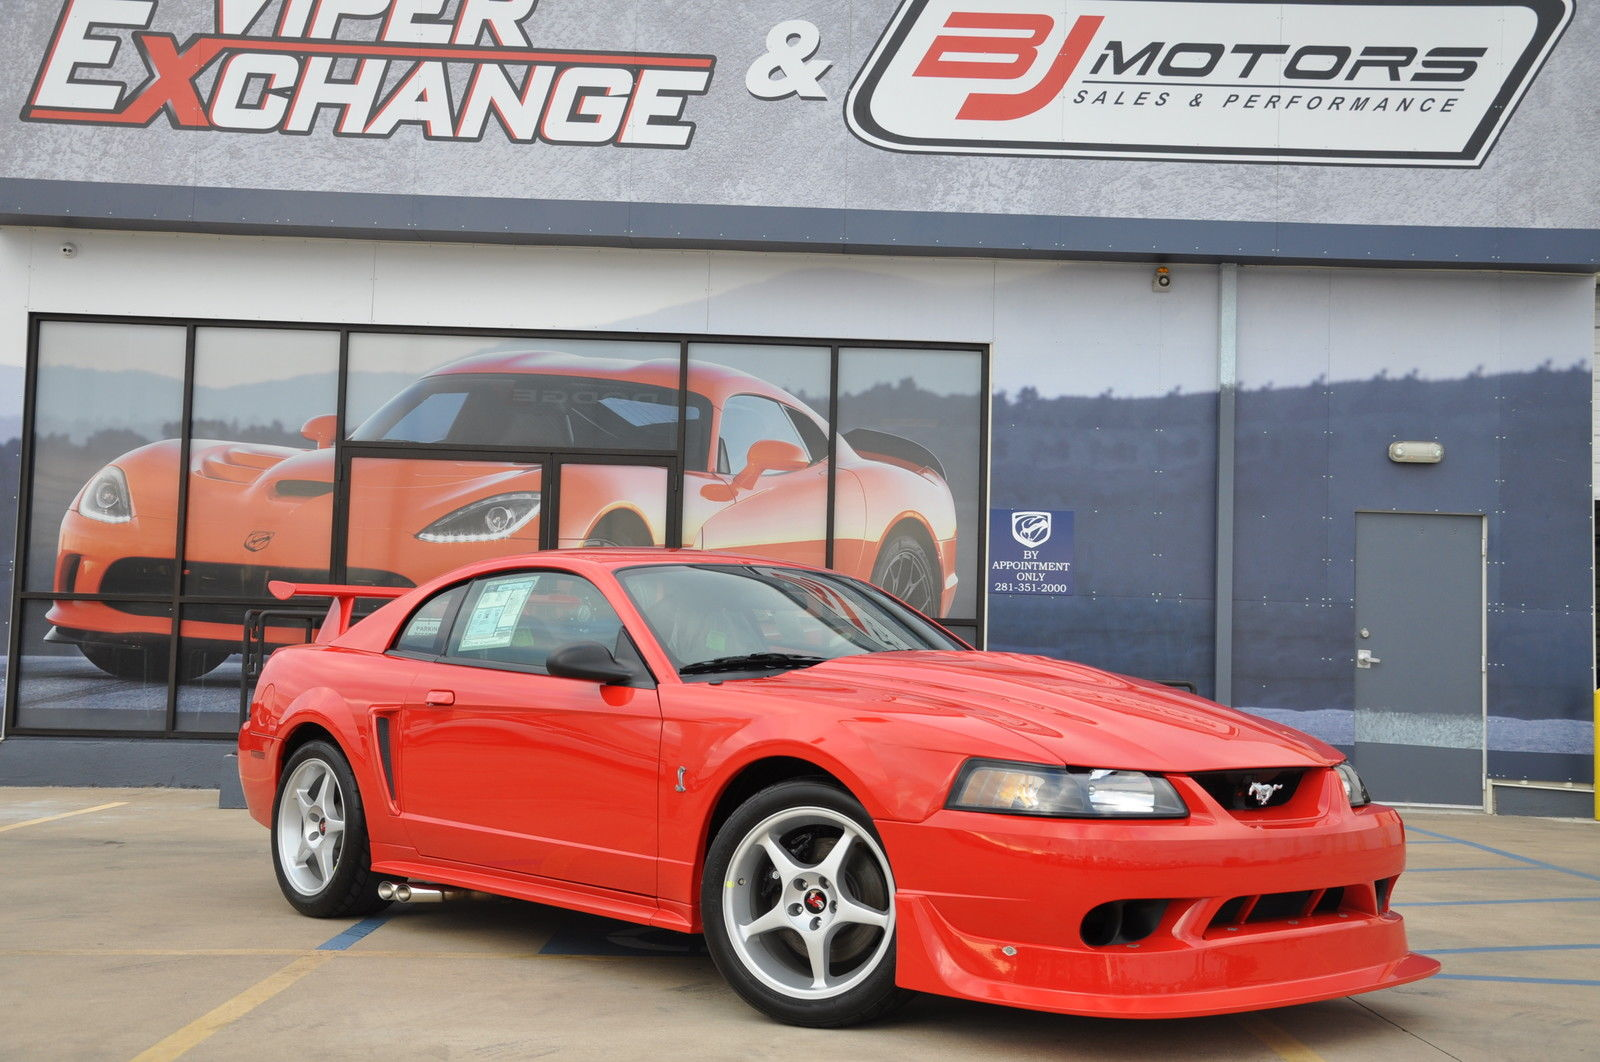 Want to buy a brand new 2000 ford mustang cobra r